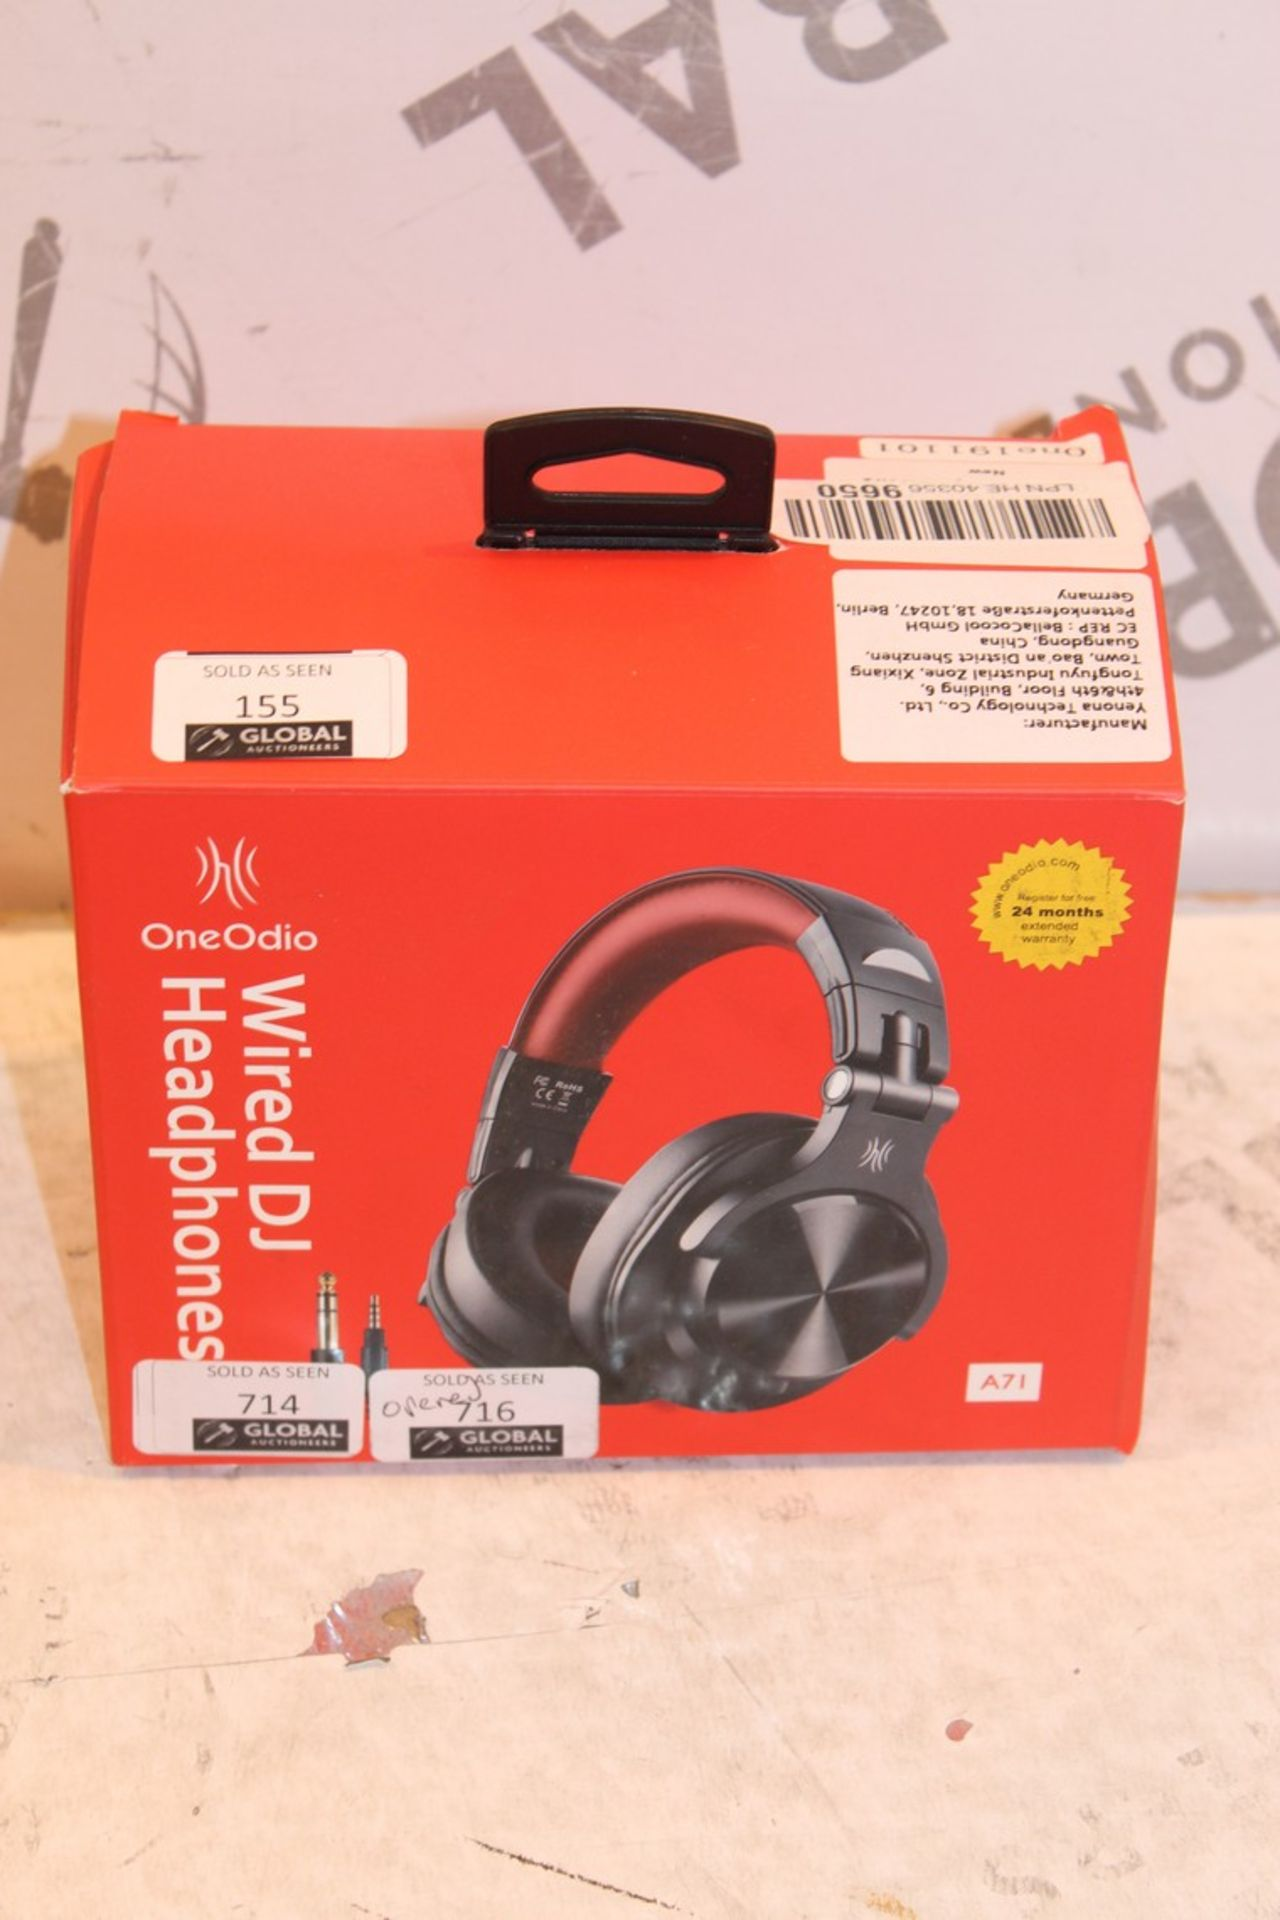 Lot 155 - Boxed One Audio Wireless DJ Headphones RRP £50 (Pictures Are For Illustration Purposes Only)(